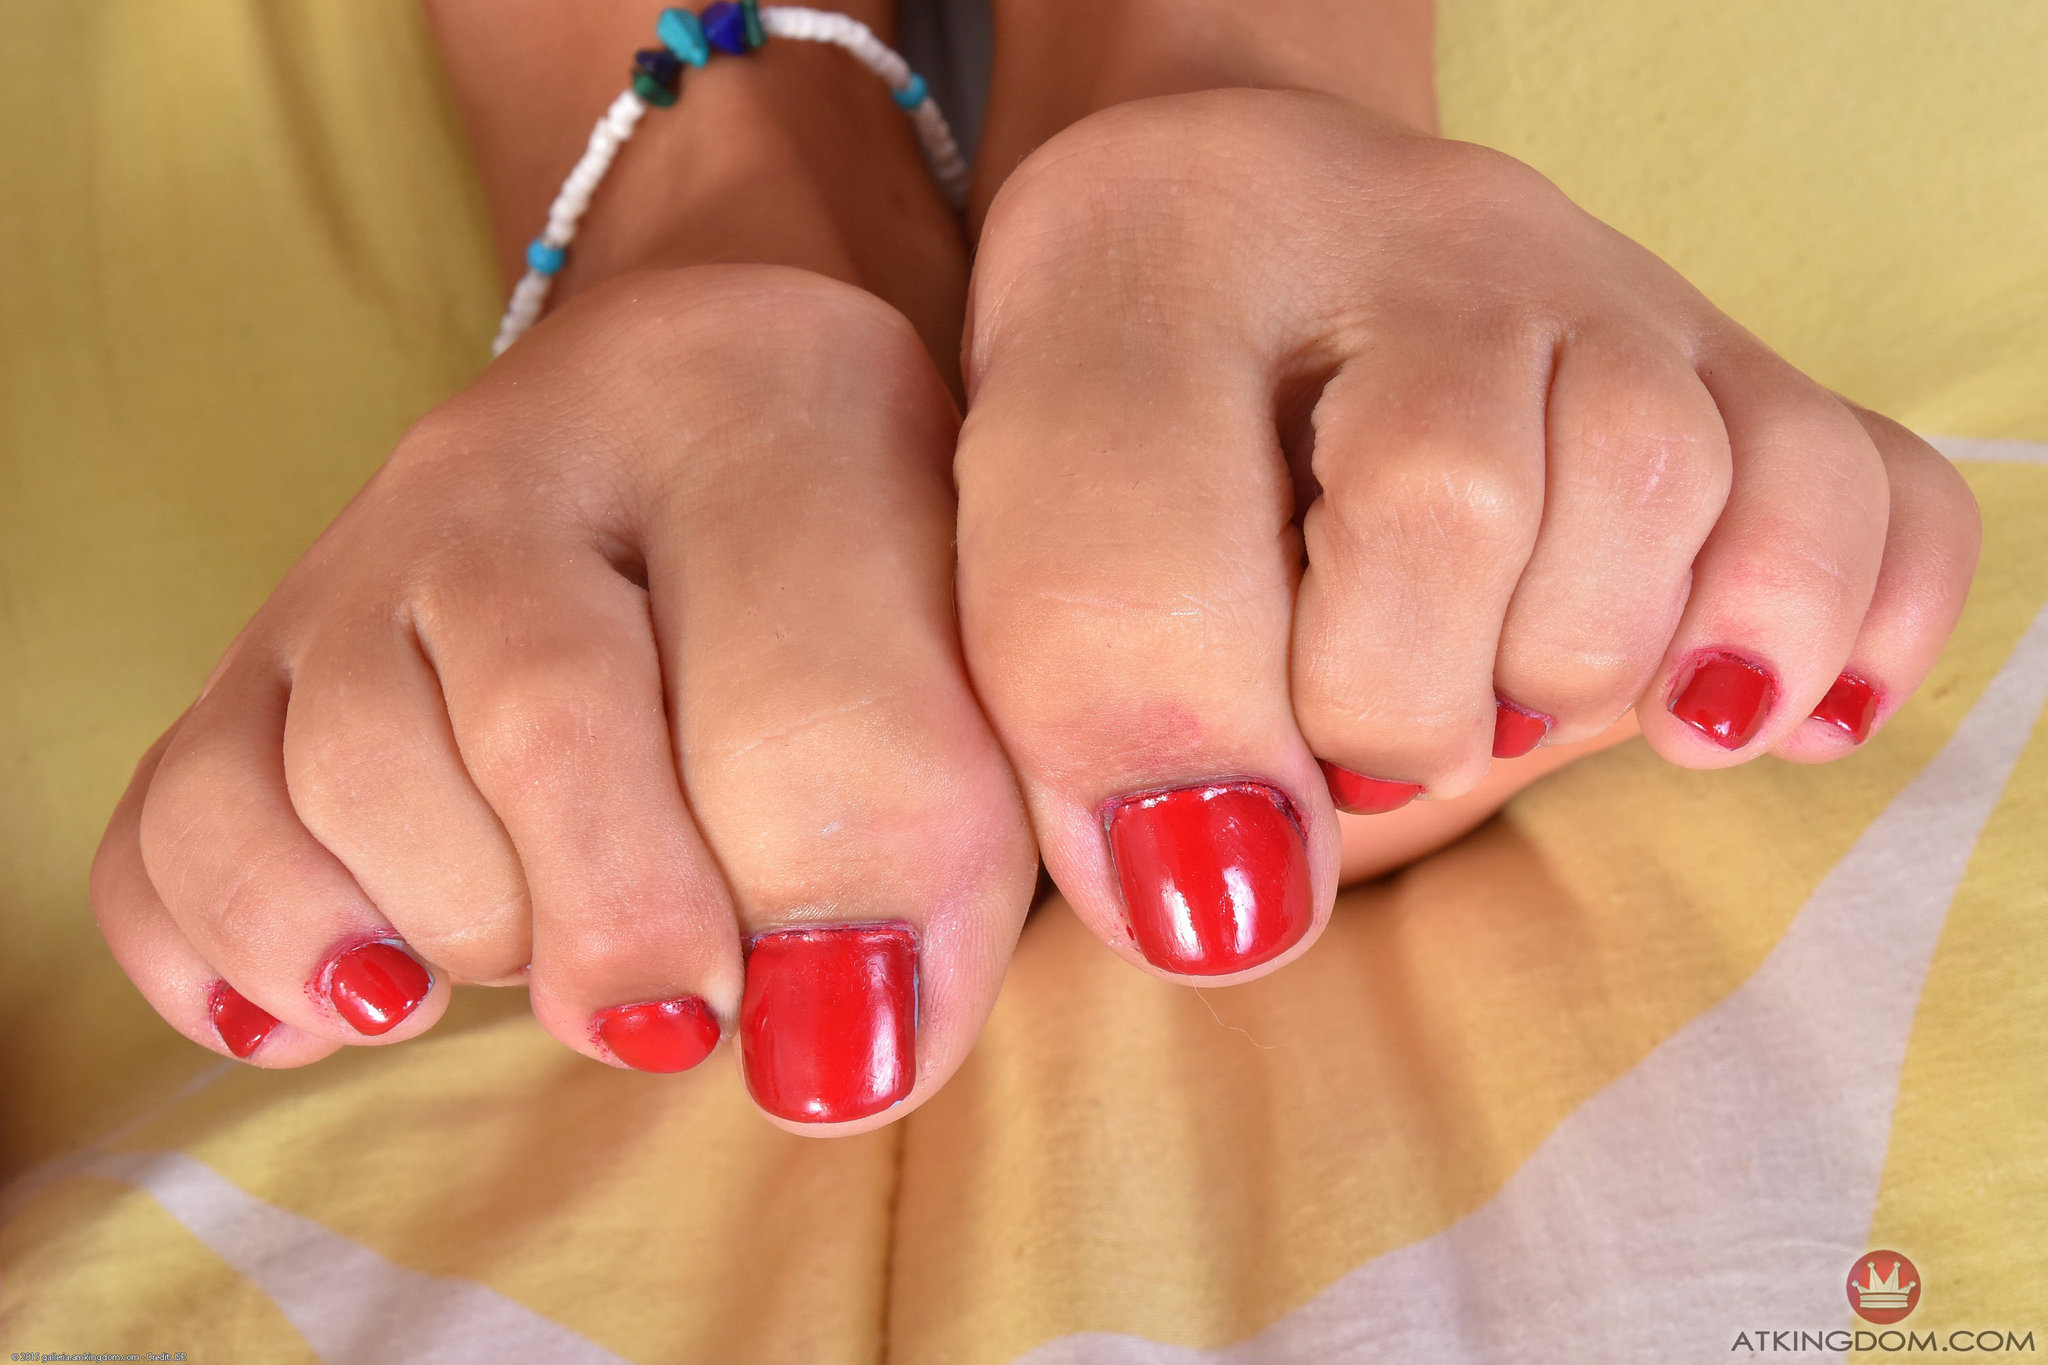 Athena Summers showing her toes